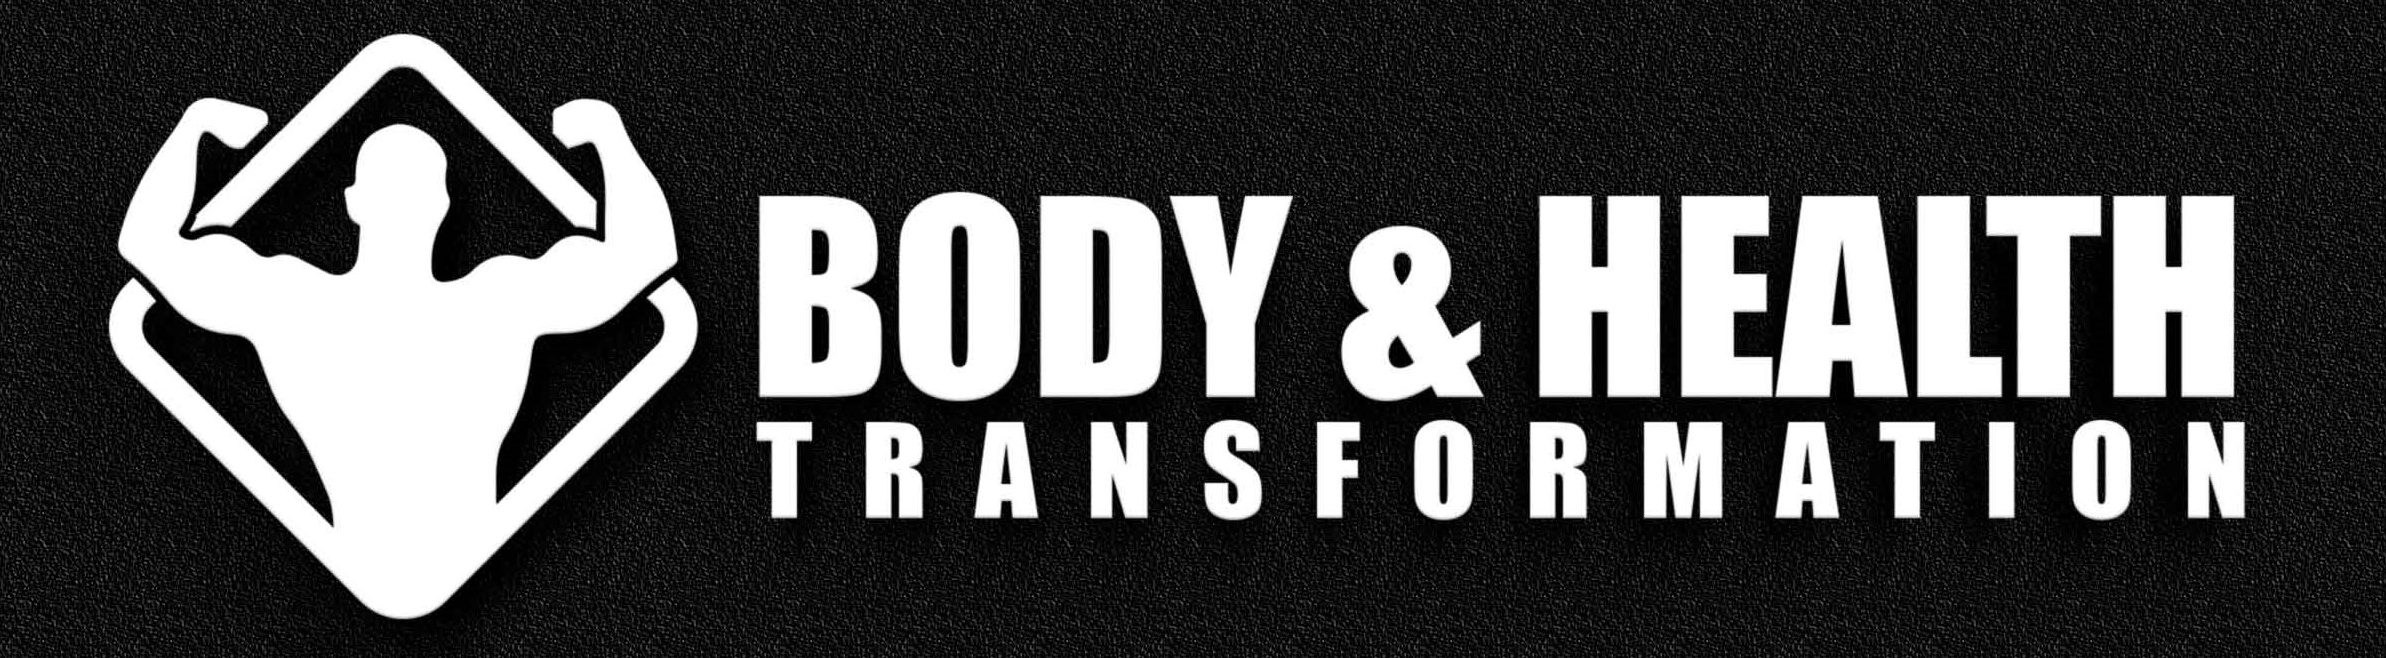 Body & Health Transformation